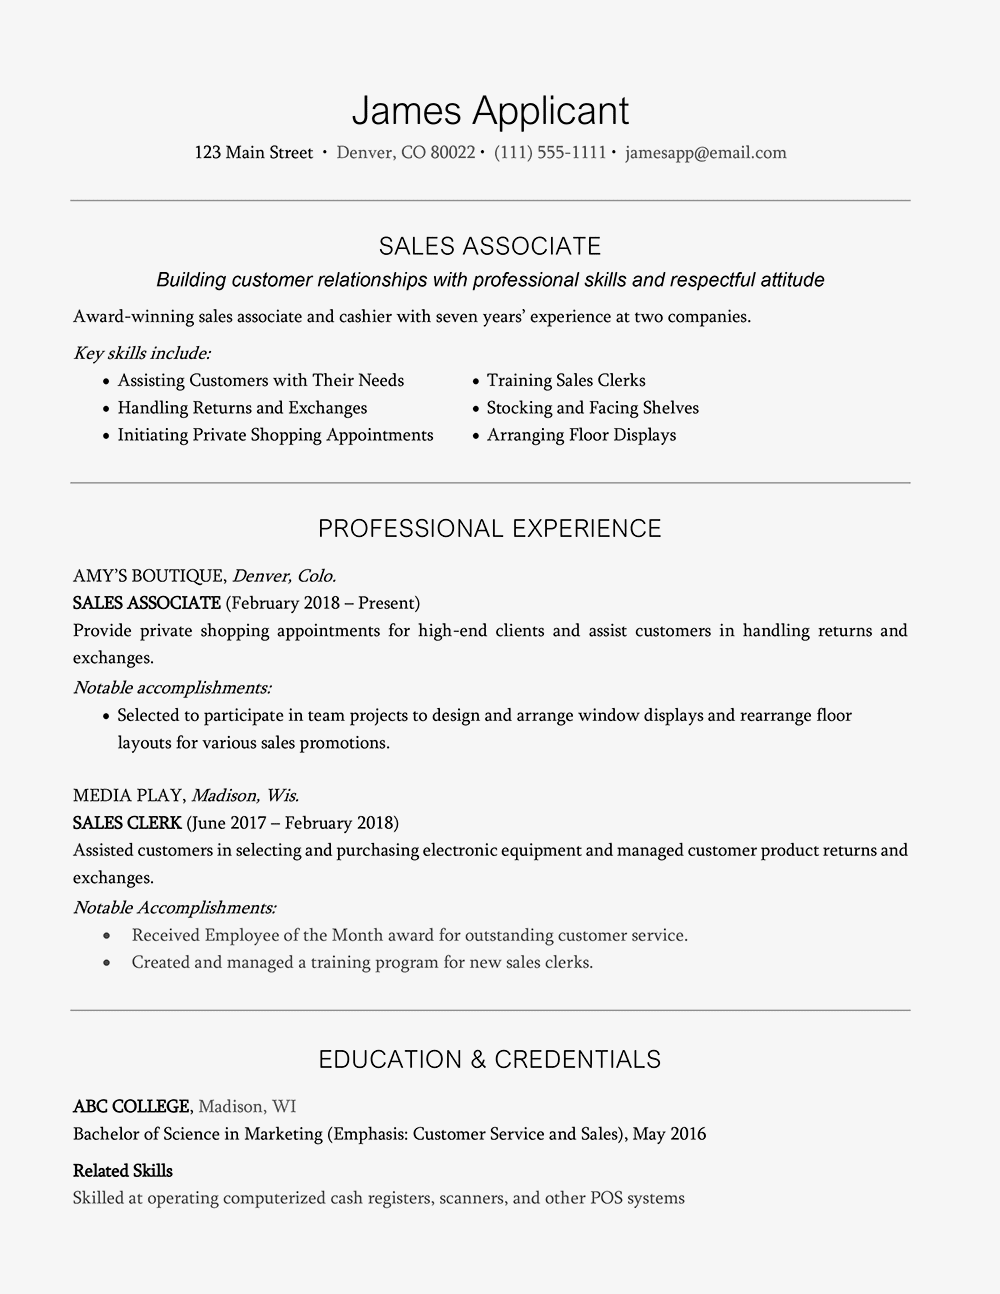 Resume headline examples and writing tips maxwellsz